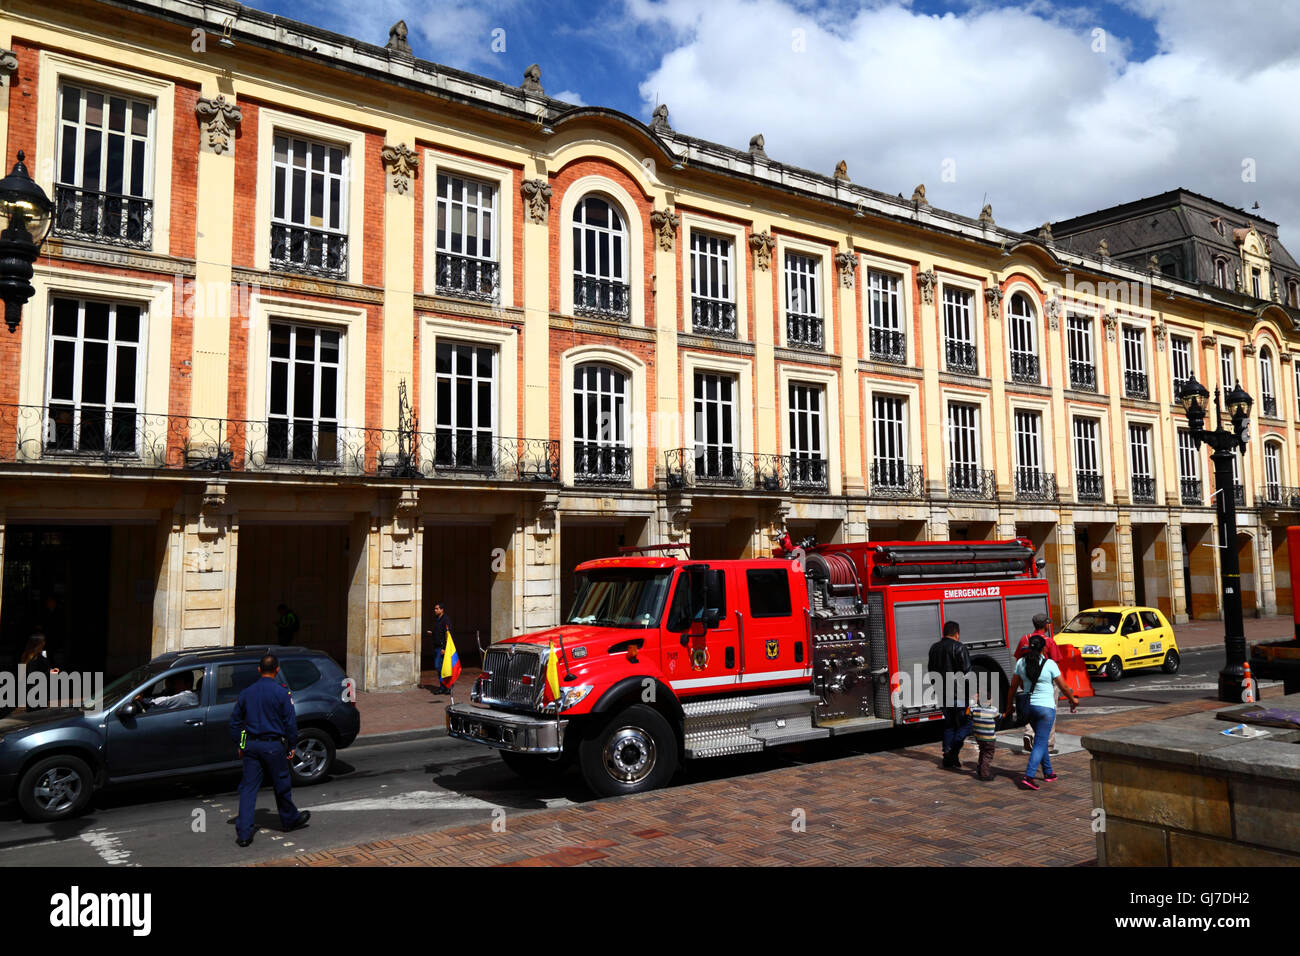 fire-engine-parked-in-front-of-lievano-p